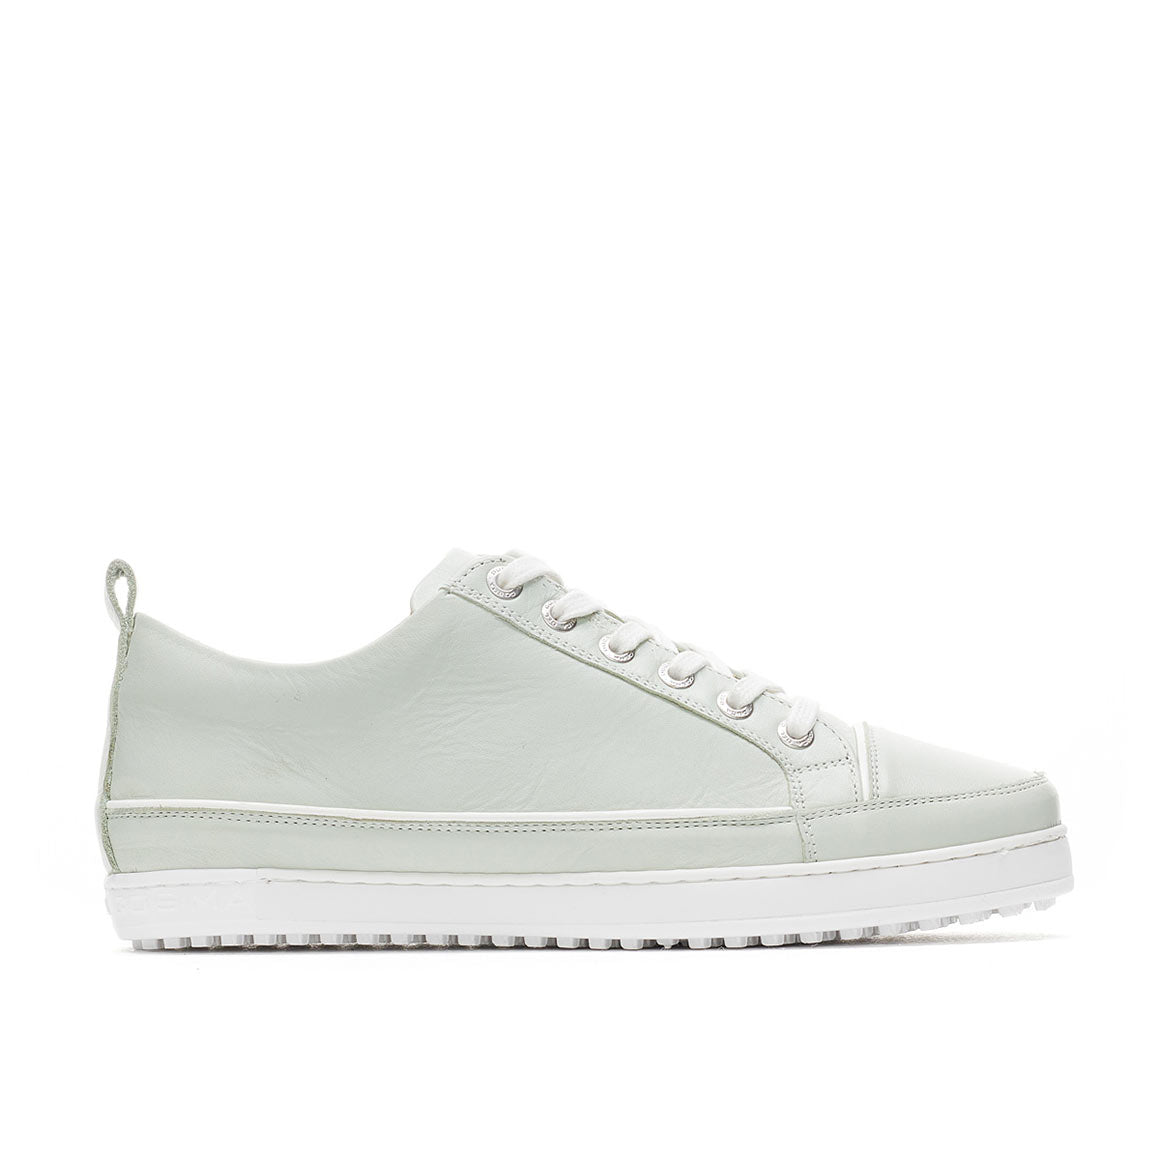 Women's Festiva Celadon Golf Shoe